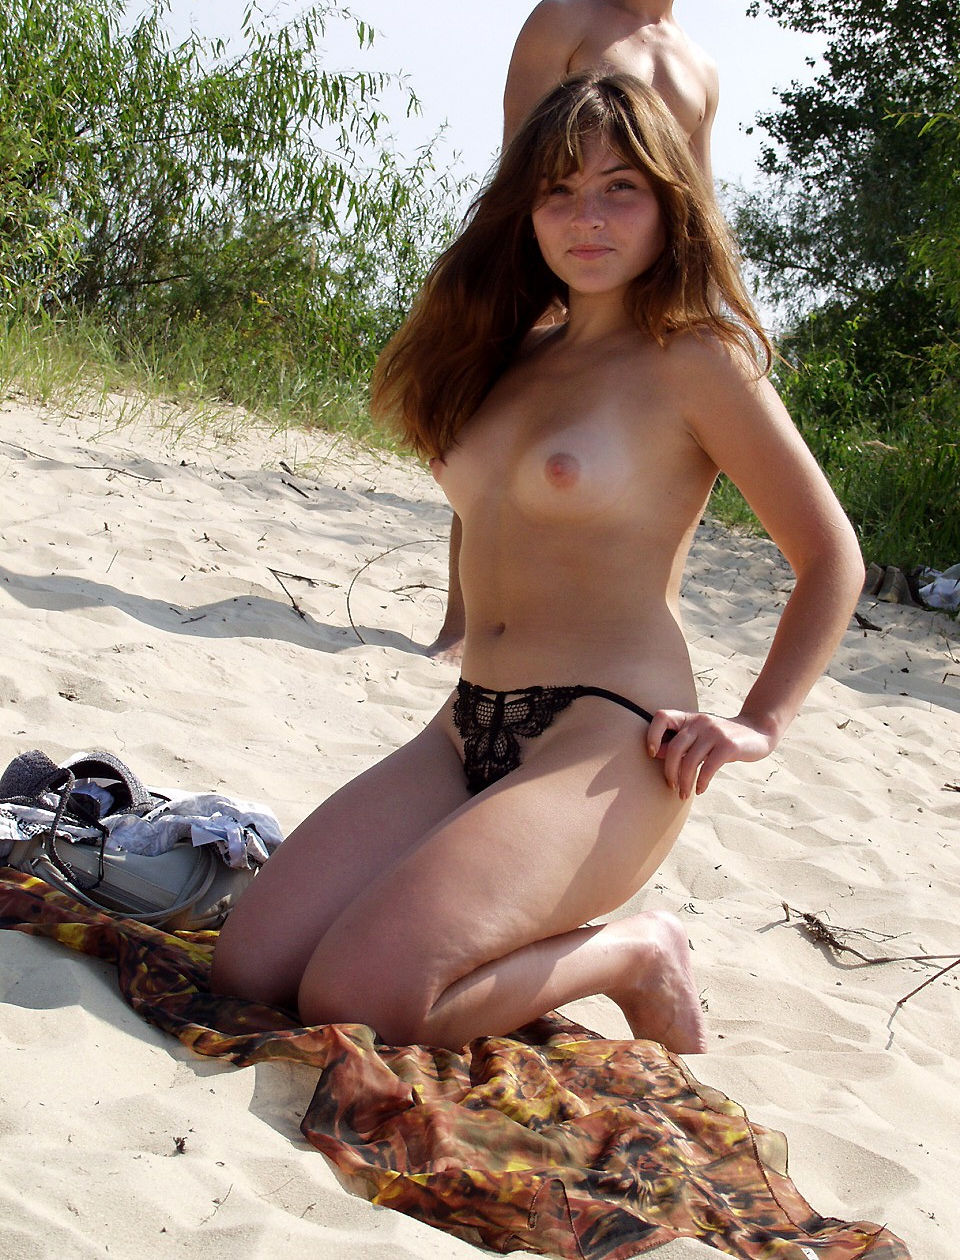 Necessary words... Teens at nude beach